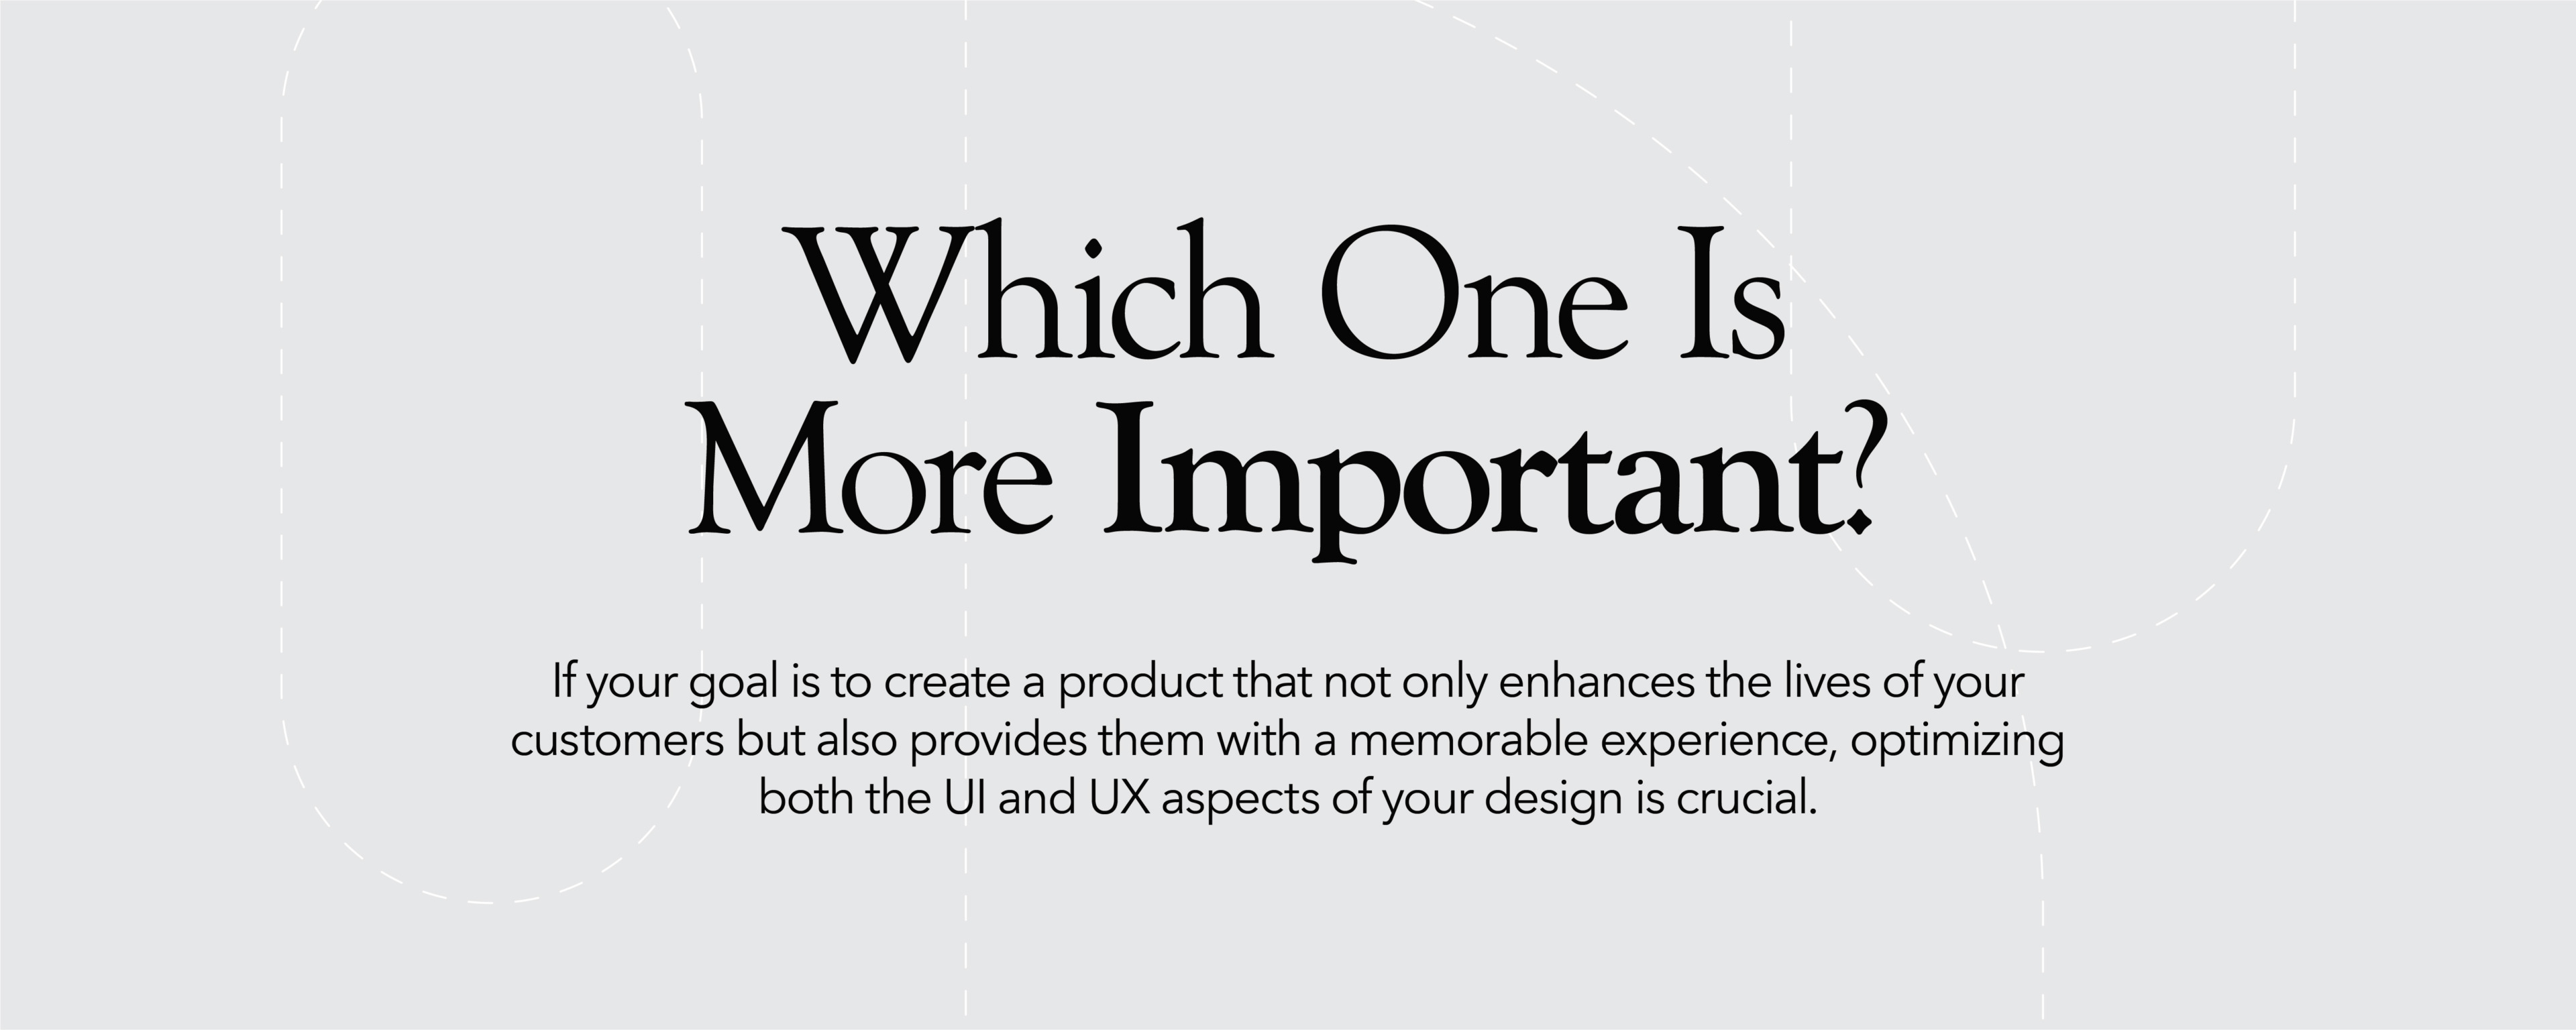 Is UI or UX more important?